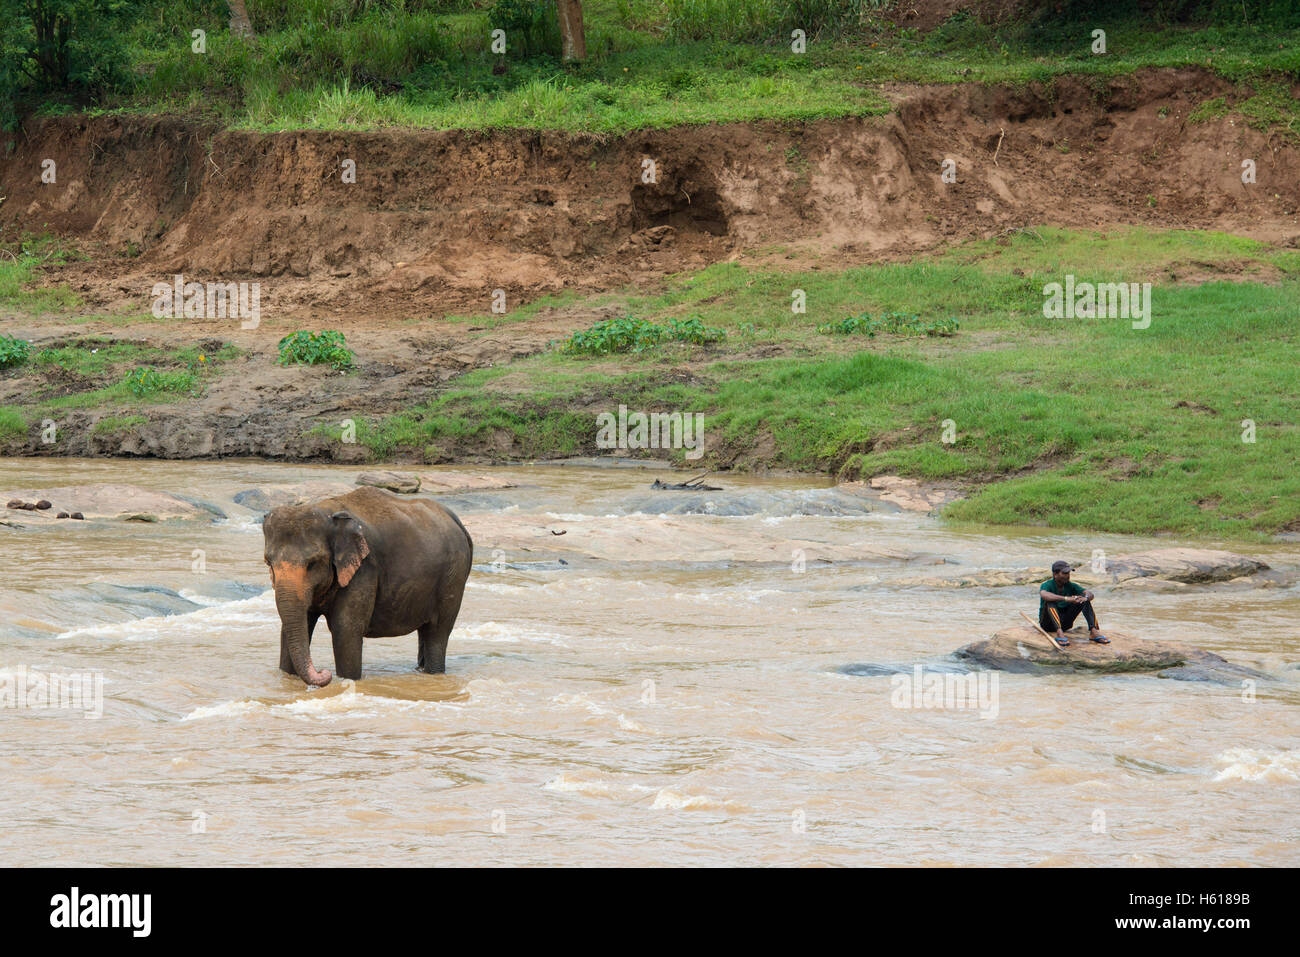 Handler and Asian elephant in the river, Pinnawala Elephant Orphanage, Sri Lanka - Stock Image